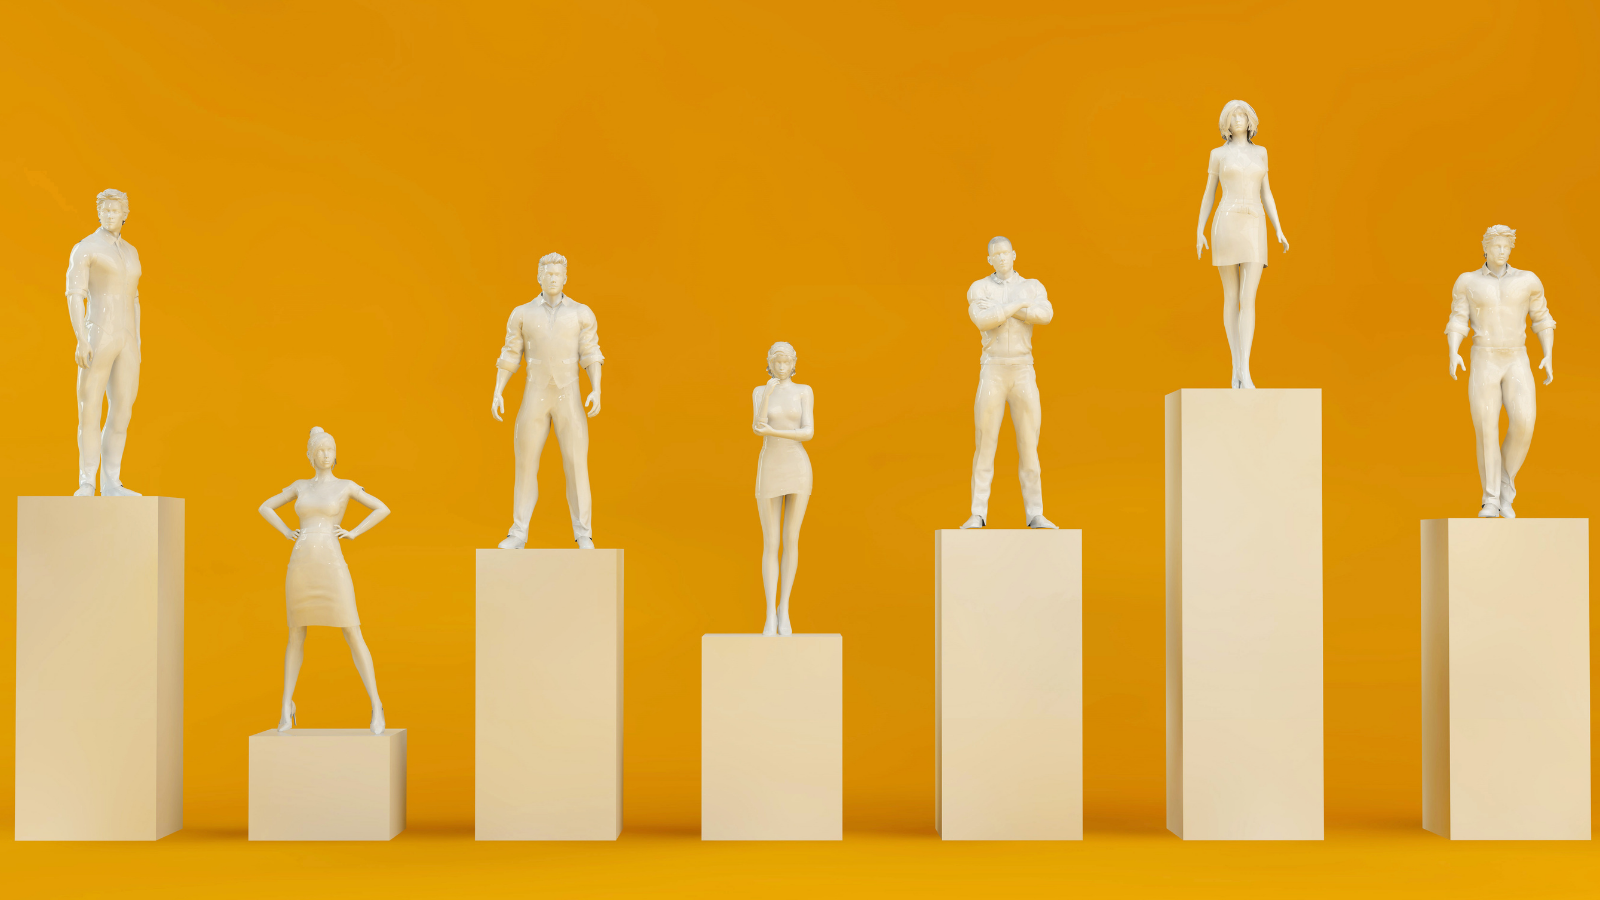 Top 6 Strategies to Elevate Employee Engagement and Win the War on Talent